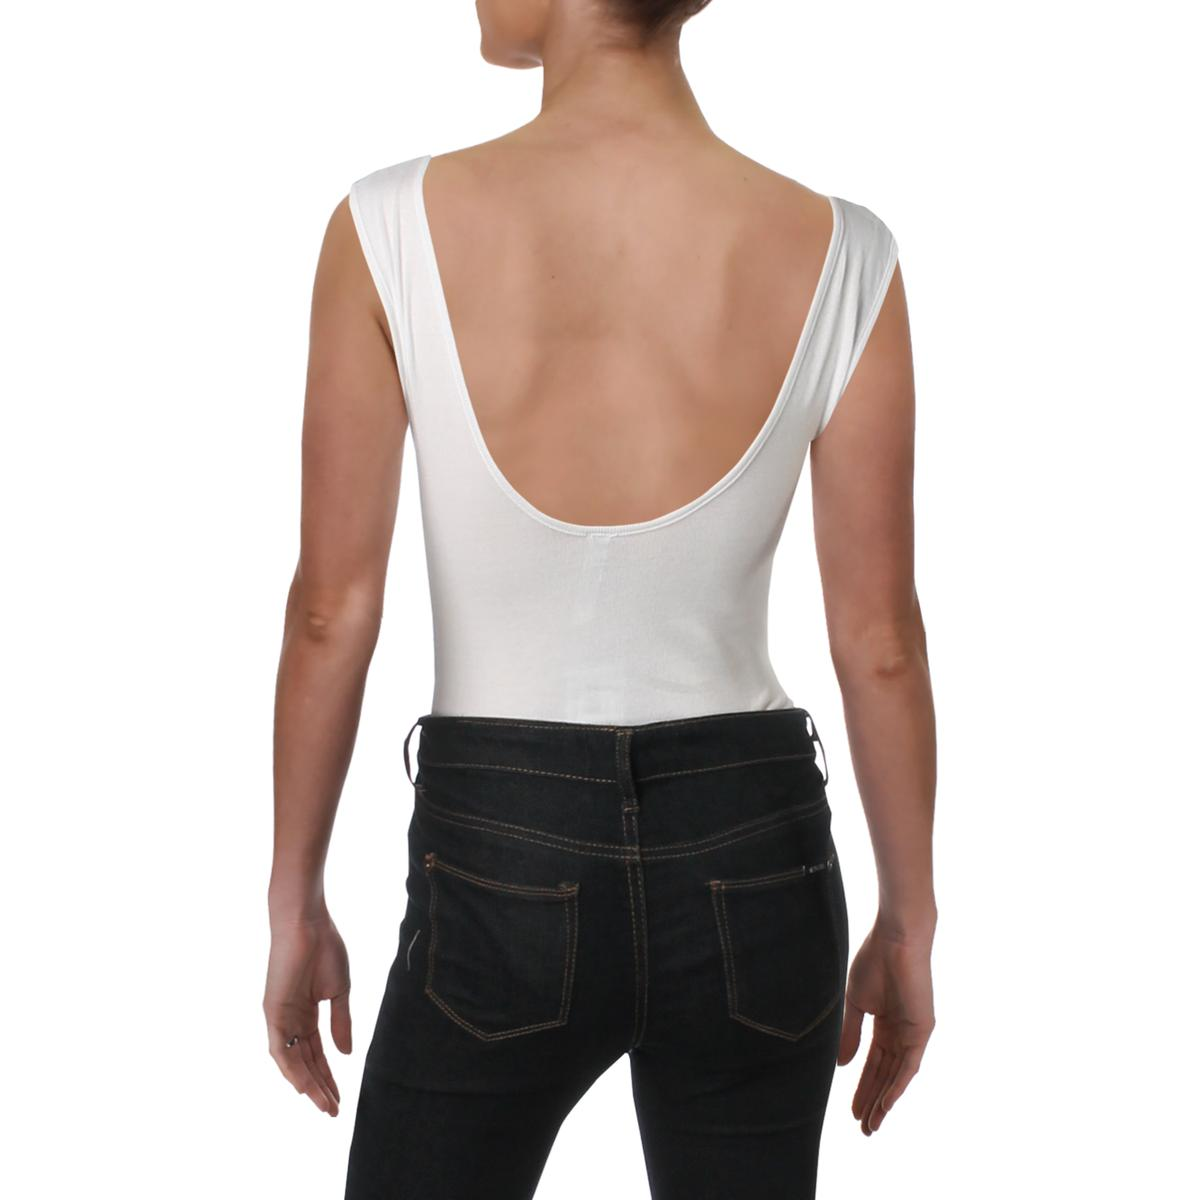 Free People Womens Take Me Out Ribbed Knit Sleeveless Bodysuit Top BHFO 0109